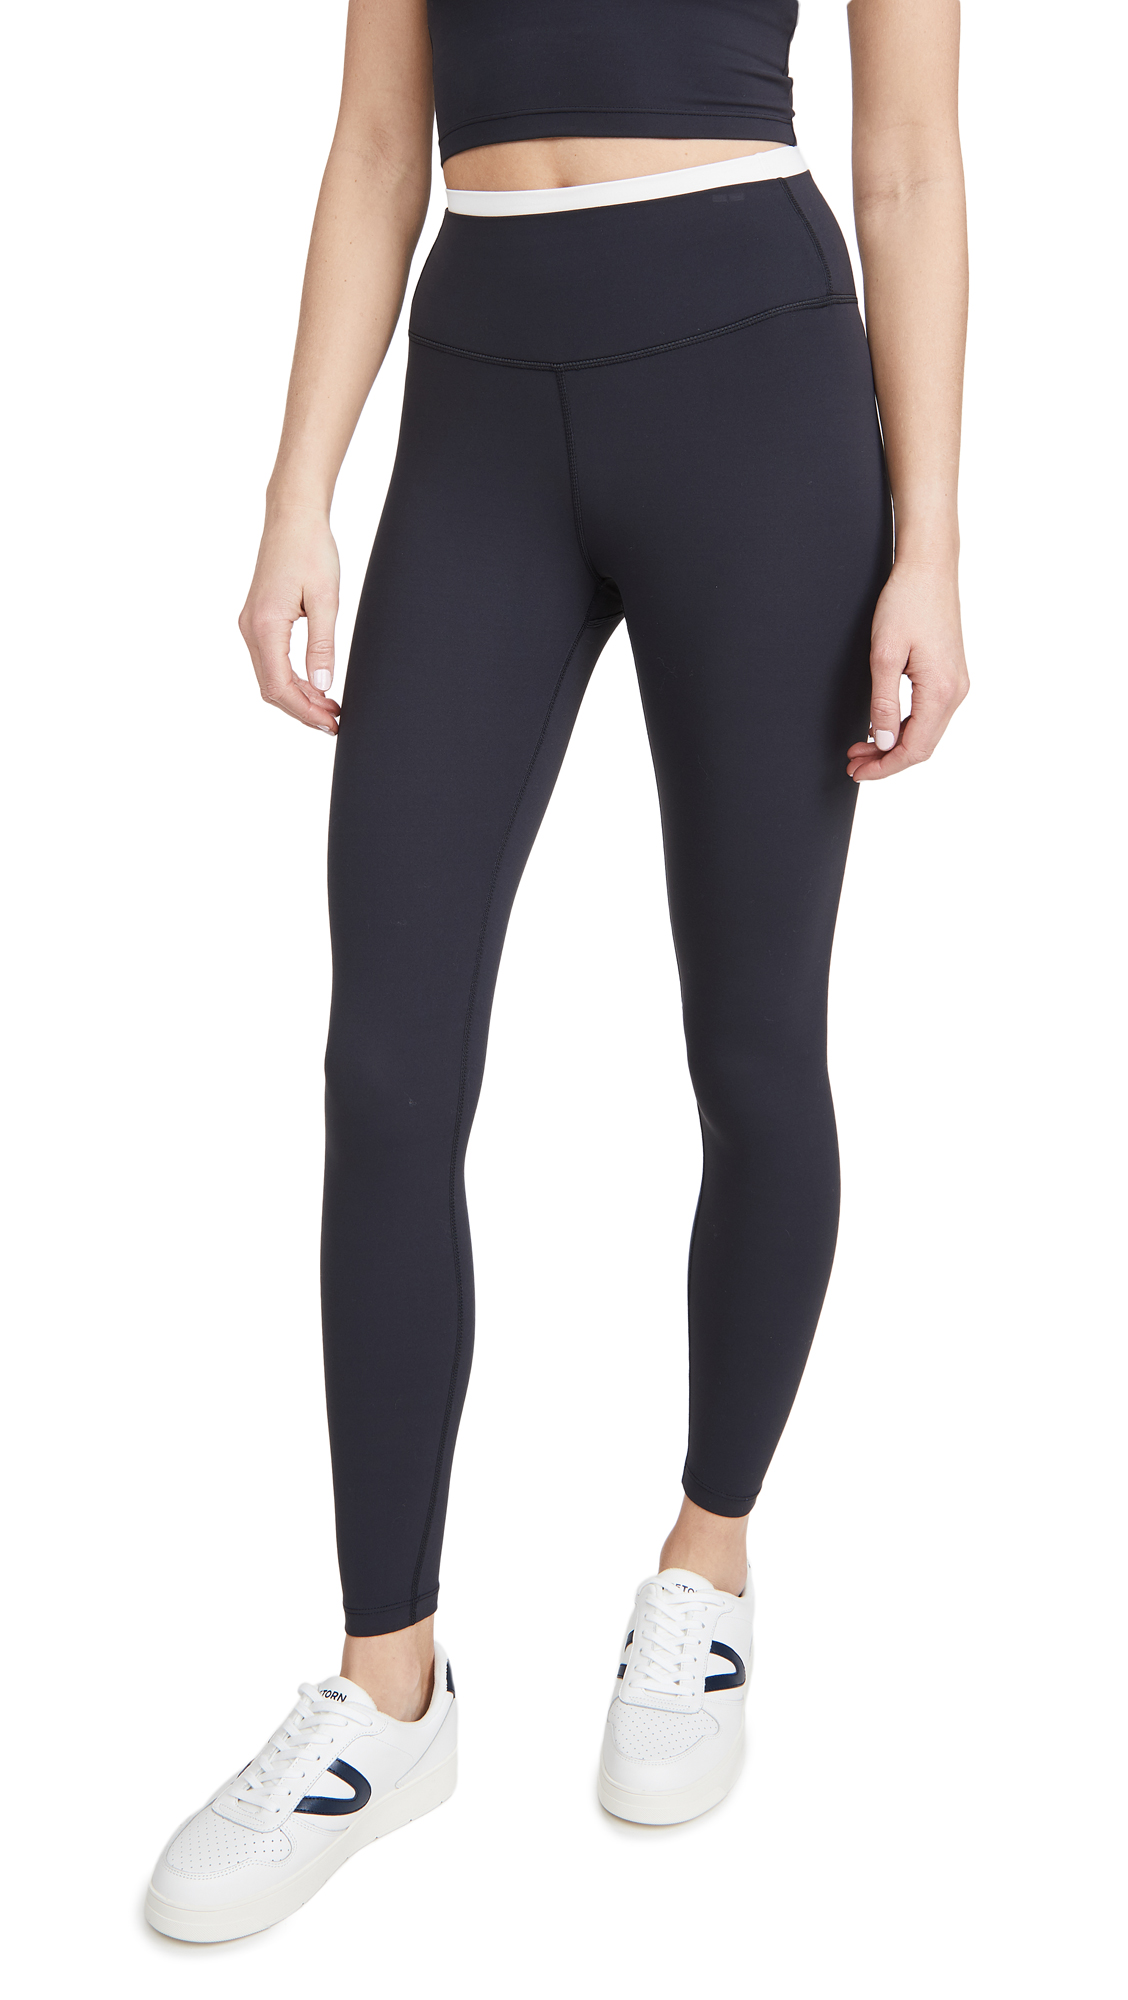 Splits59 Amber High Waist Airweight Leggings